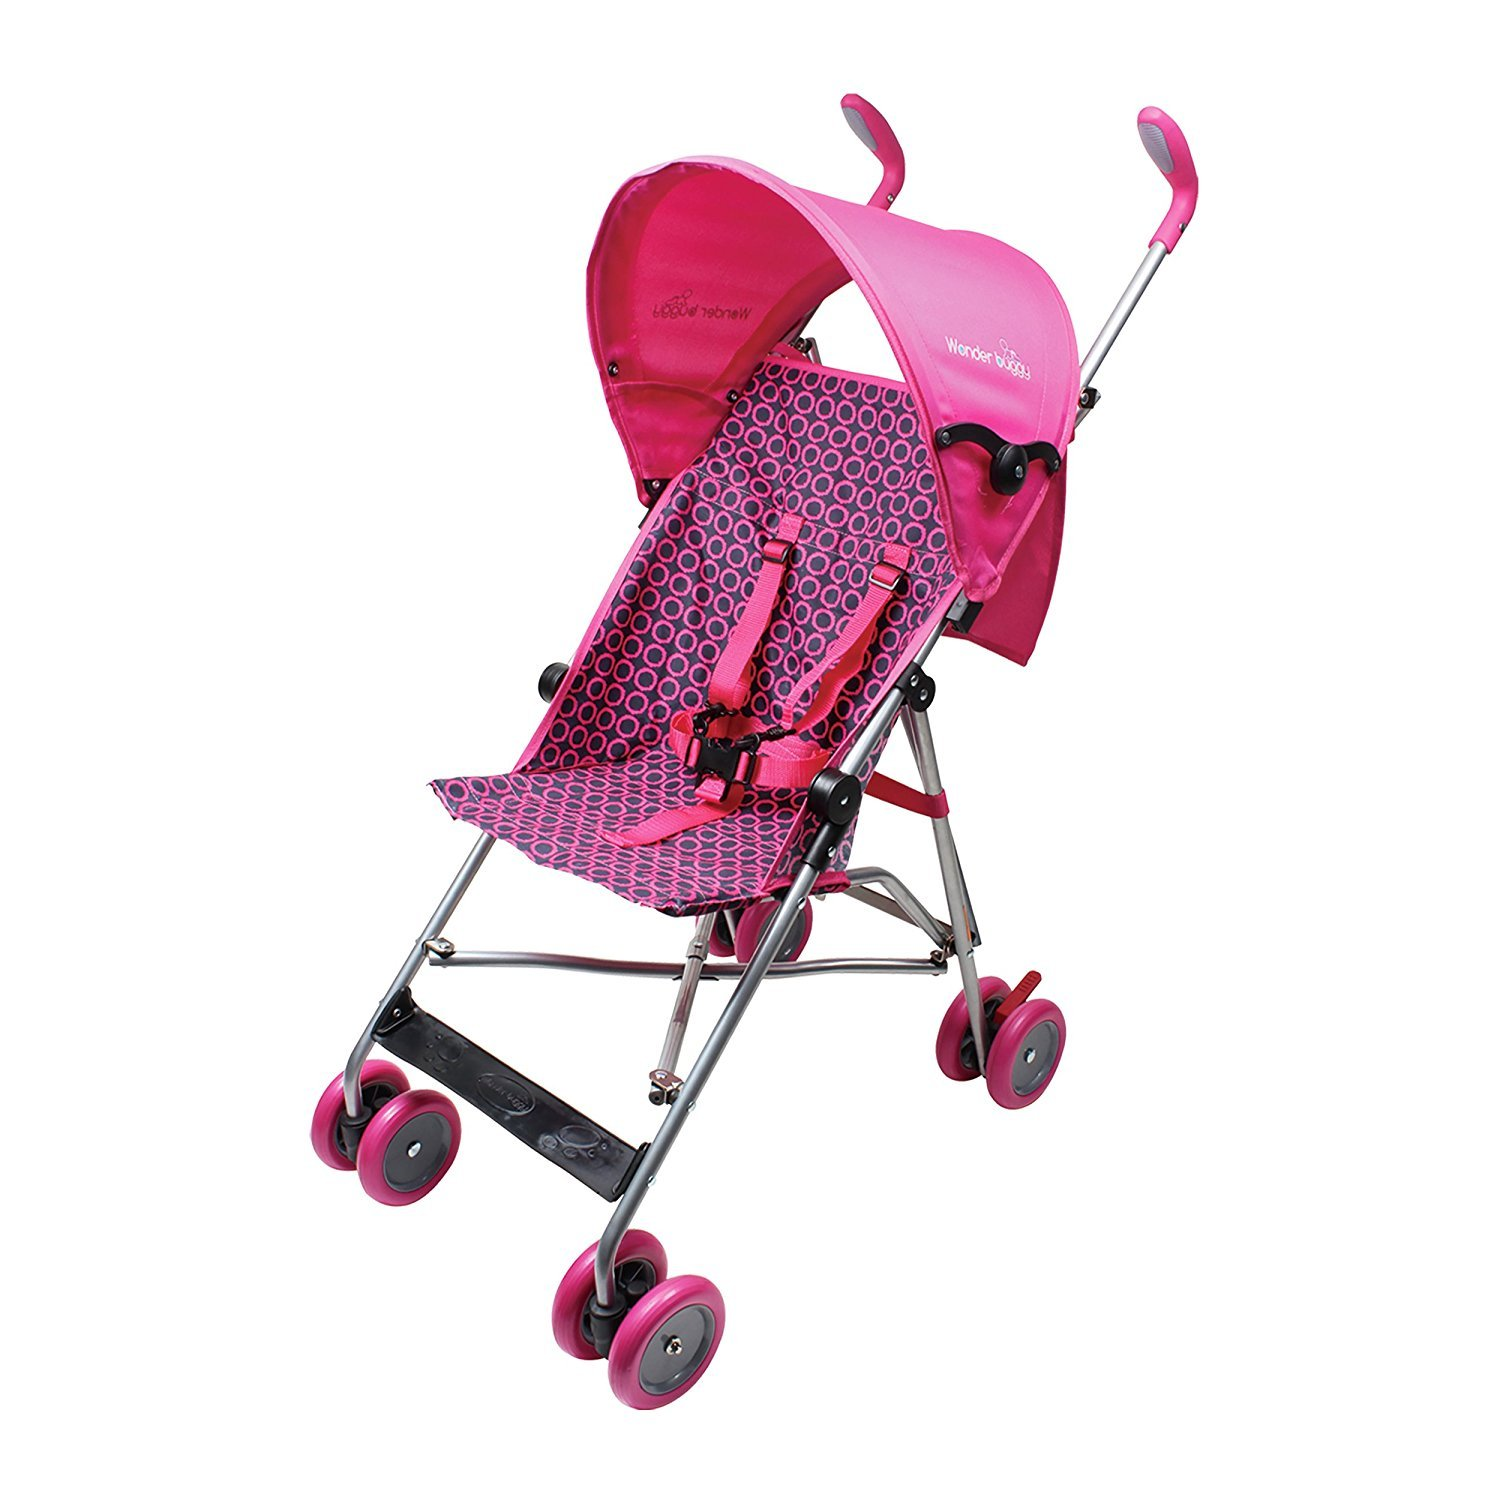 Wonder Buggy Skyler Jumbo Umbrella Stroller with Round Canopy & Mesh Compartment, Pink, One Size